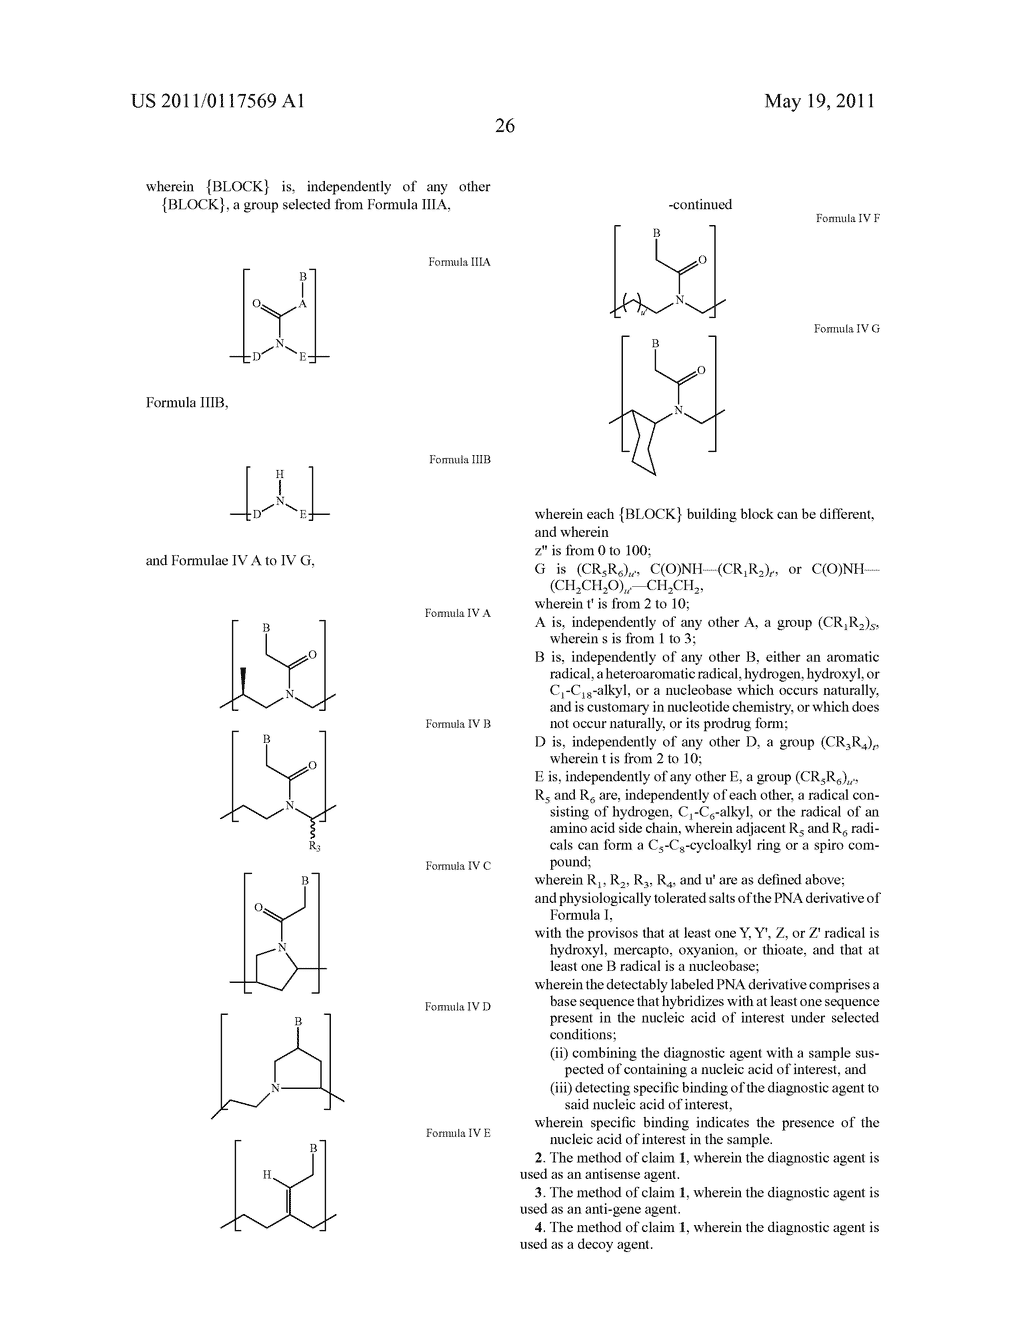 POLYMIDE NUCLEIC ACID DERIVATIVES, AND AGENTS AND PROCESSES FOR PREPARING THEM - diagram, schematic, and image 43